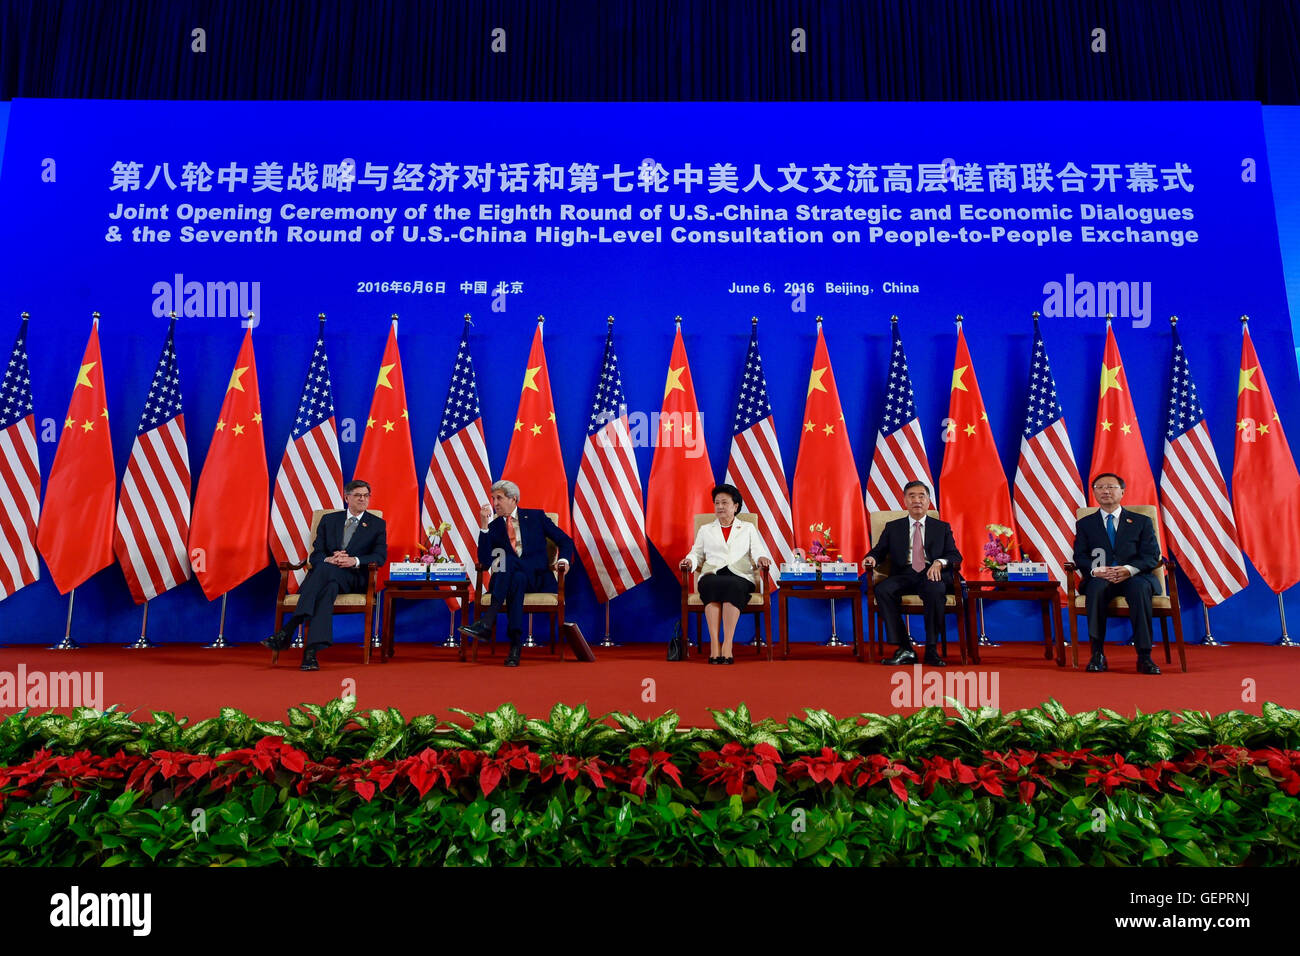 Secretaries Kerry and Lew, Chinese Vice Premier Liu, and Chinese State Councilor Yang Wait for Chinese President - Stock Image